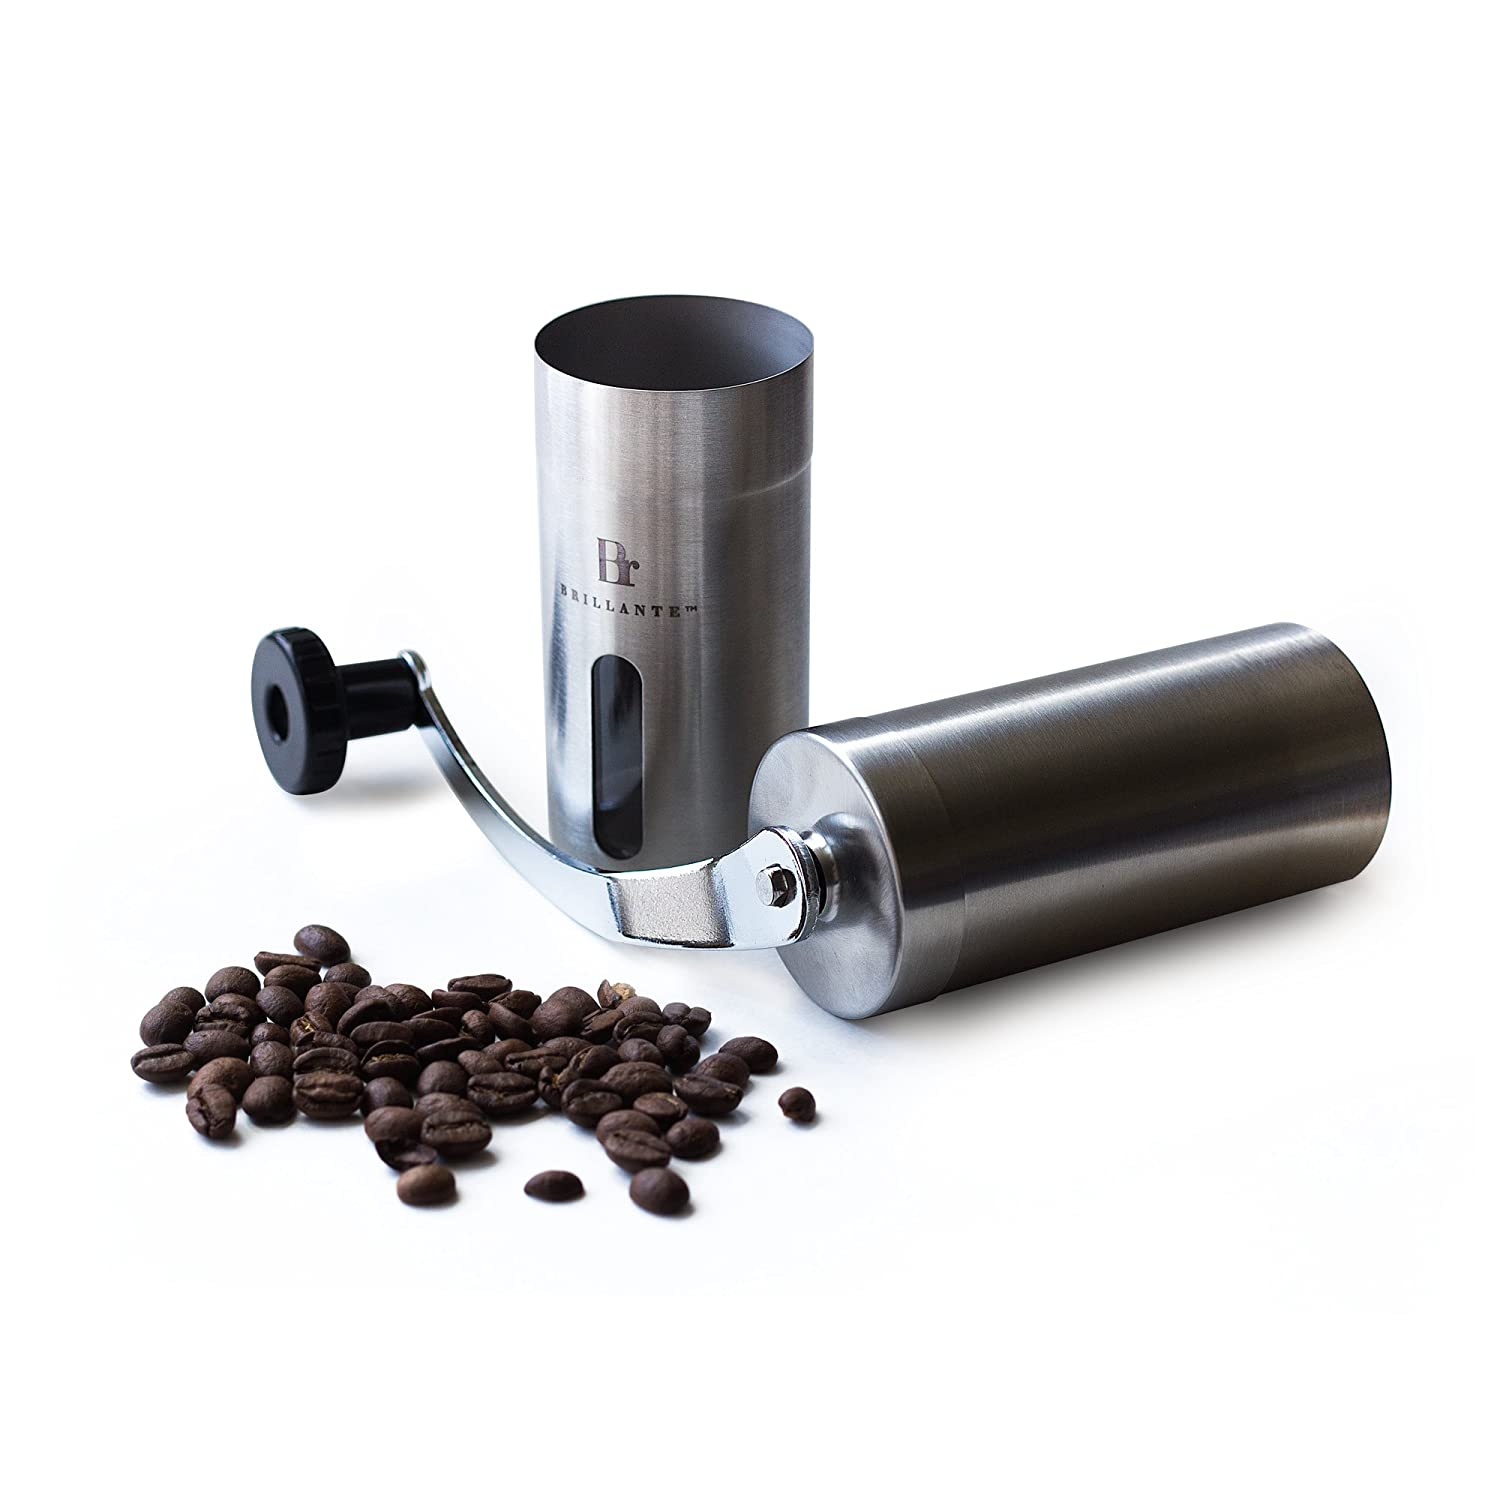 Travel Coffee Grinder Review